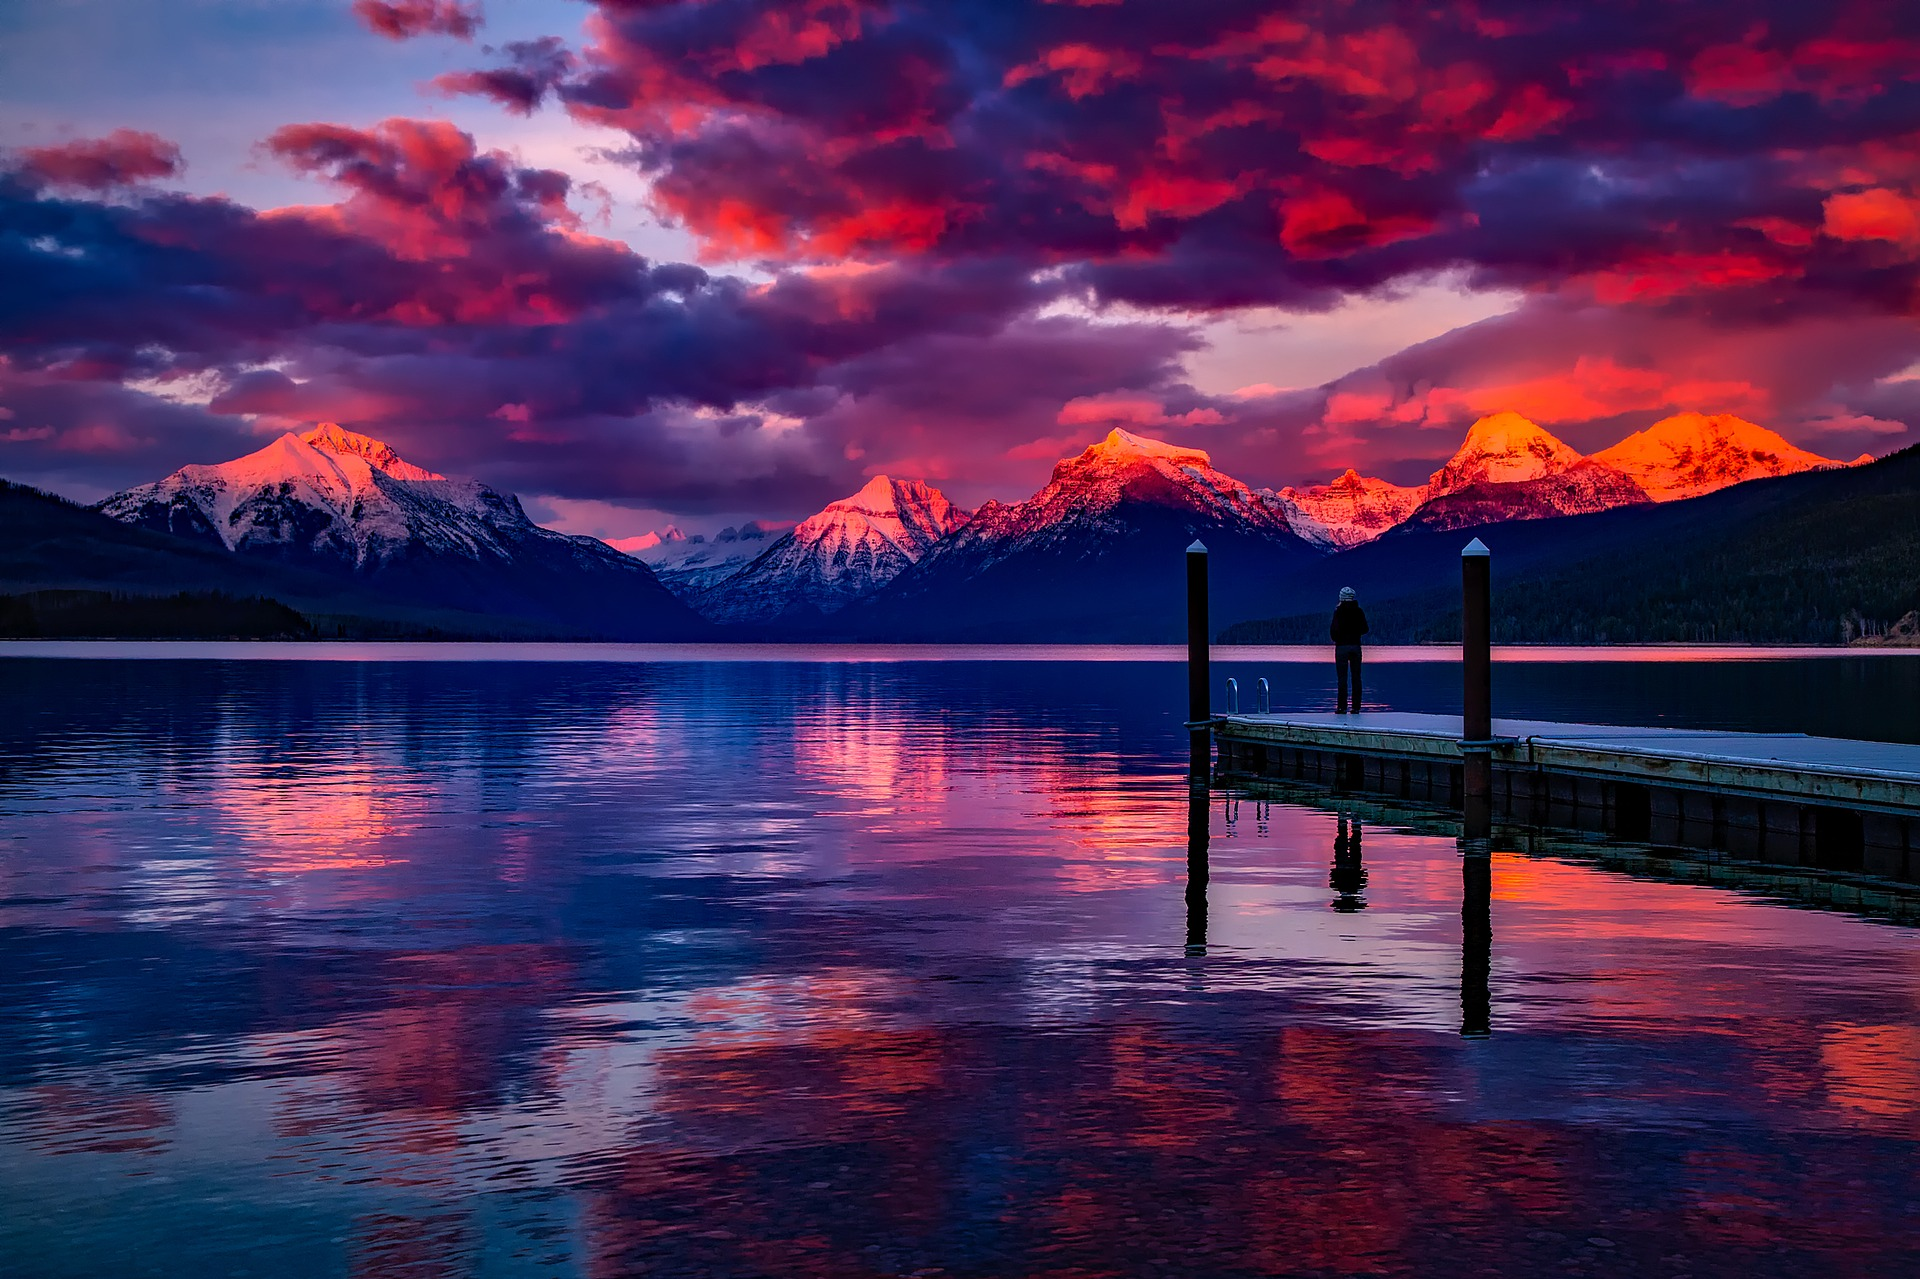 lake-mcdonald-summer-vacation-ideas-in-america-alignthoughts